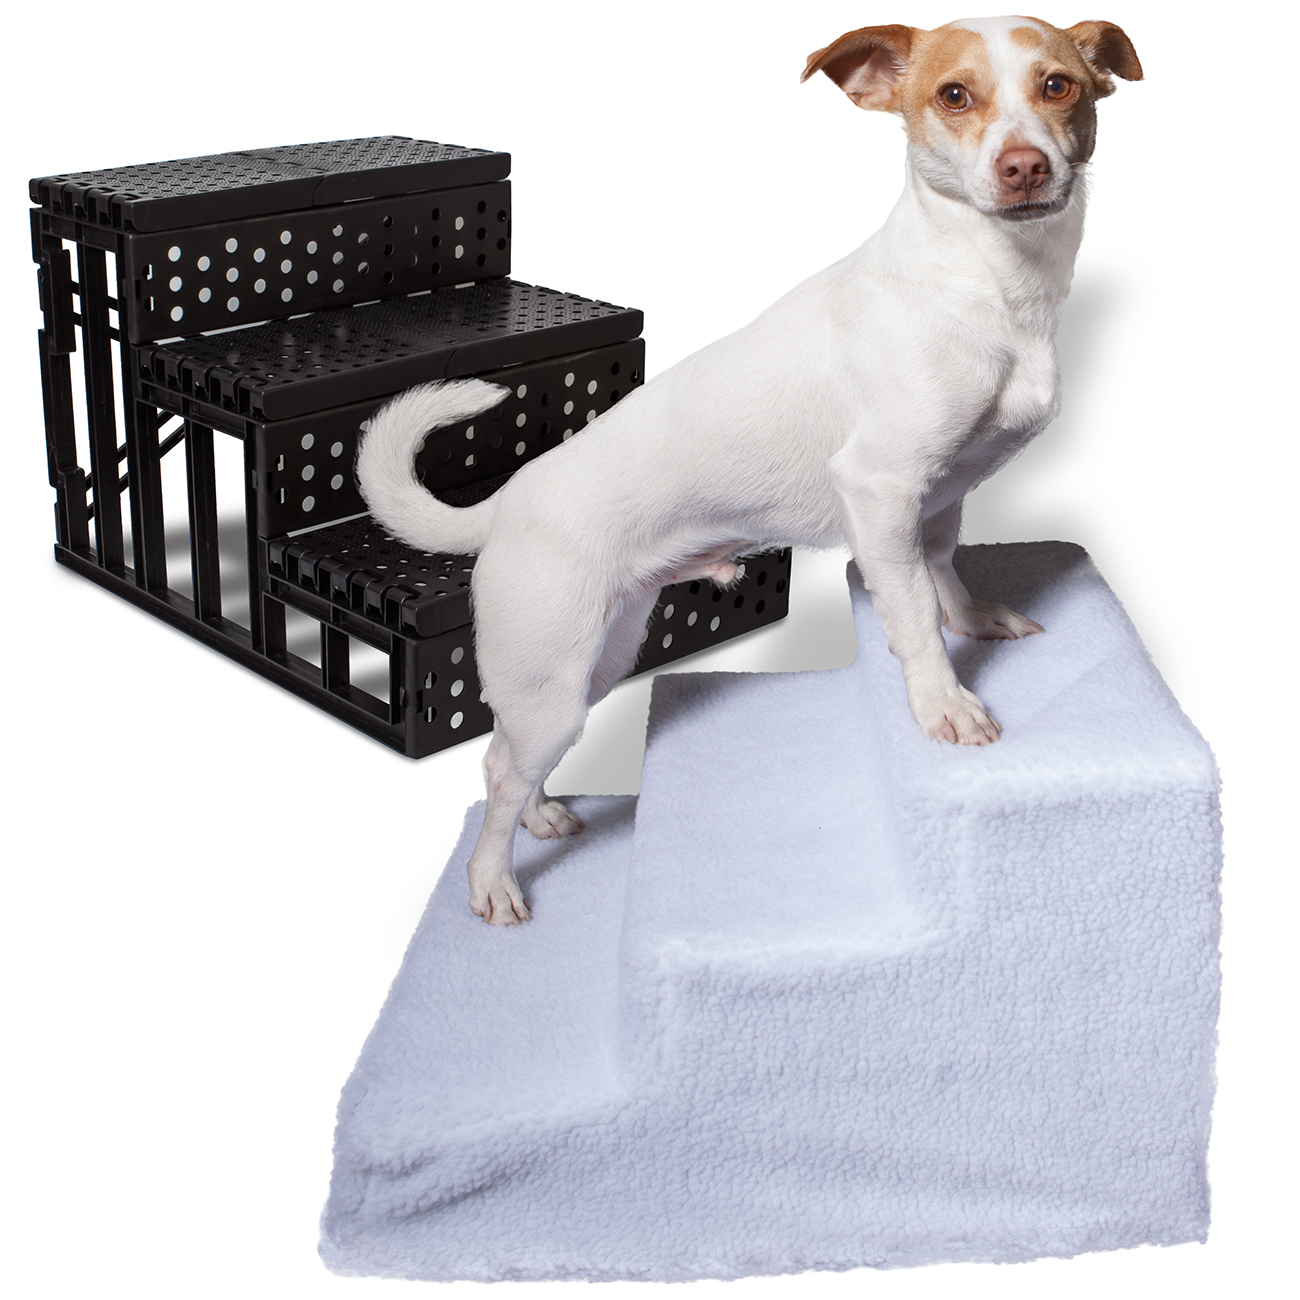 OxGord Dog Pet Stairs Steps Indoor Ramp Portable Folding Animal Cat Ladder  With Cover   Walmart.com